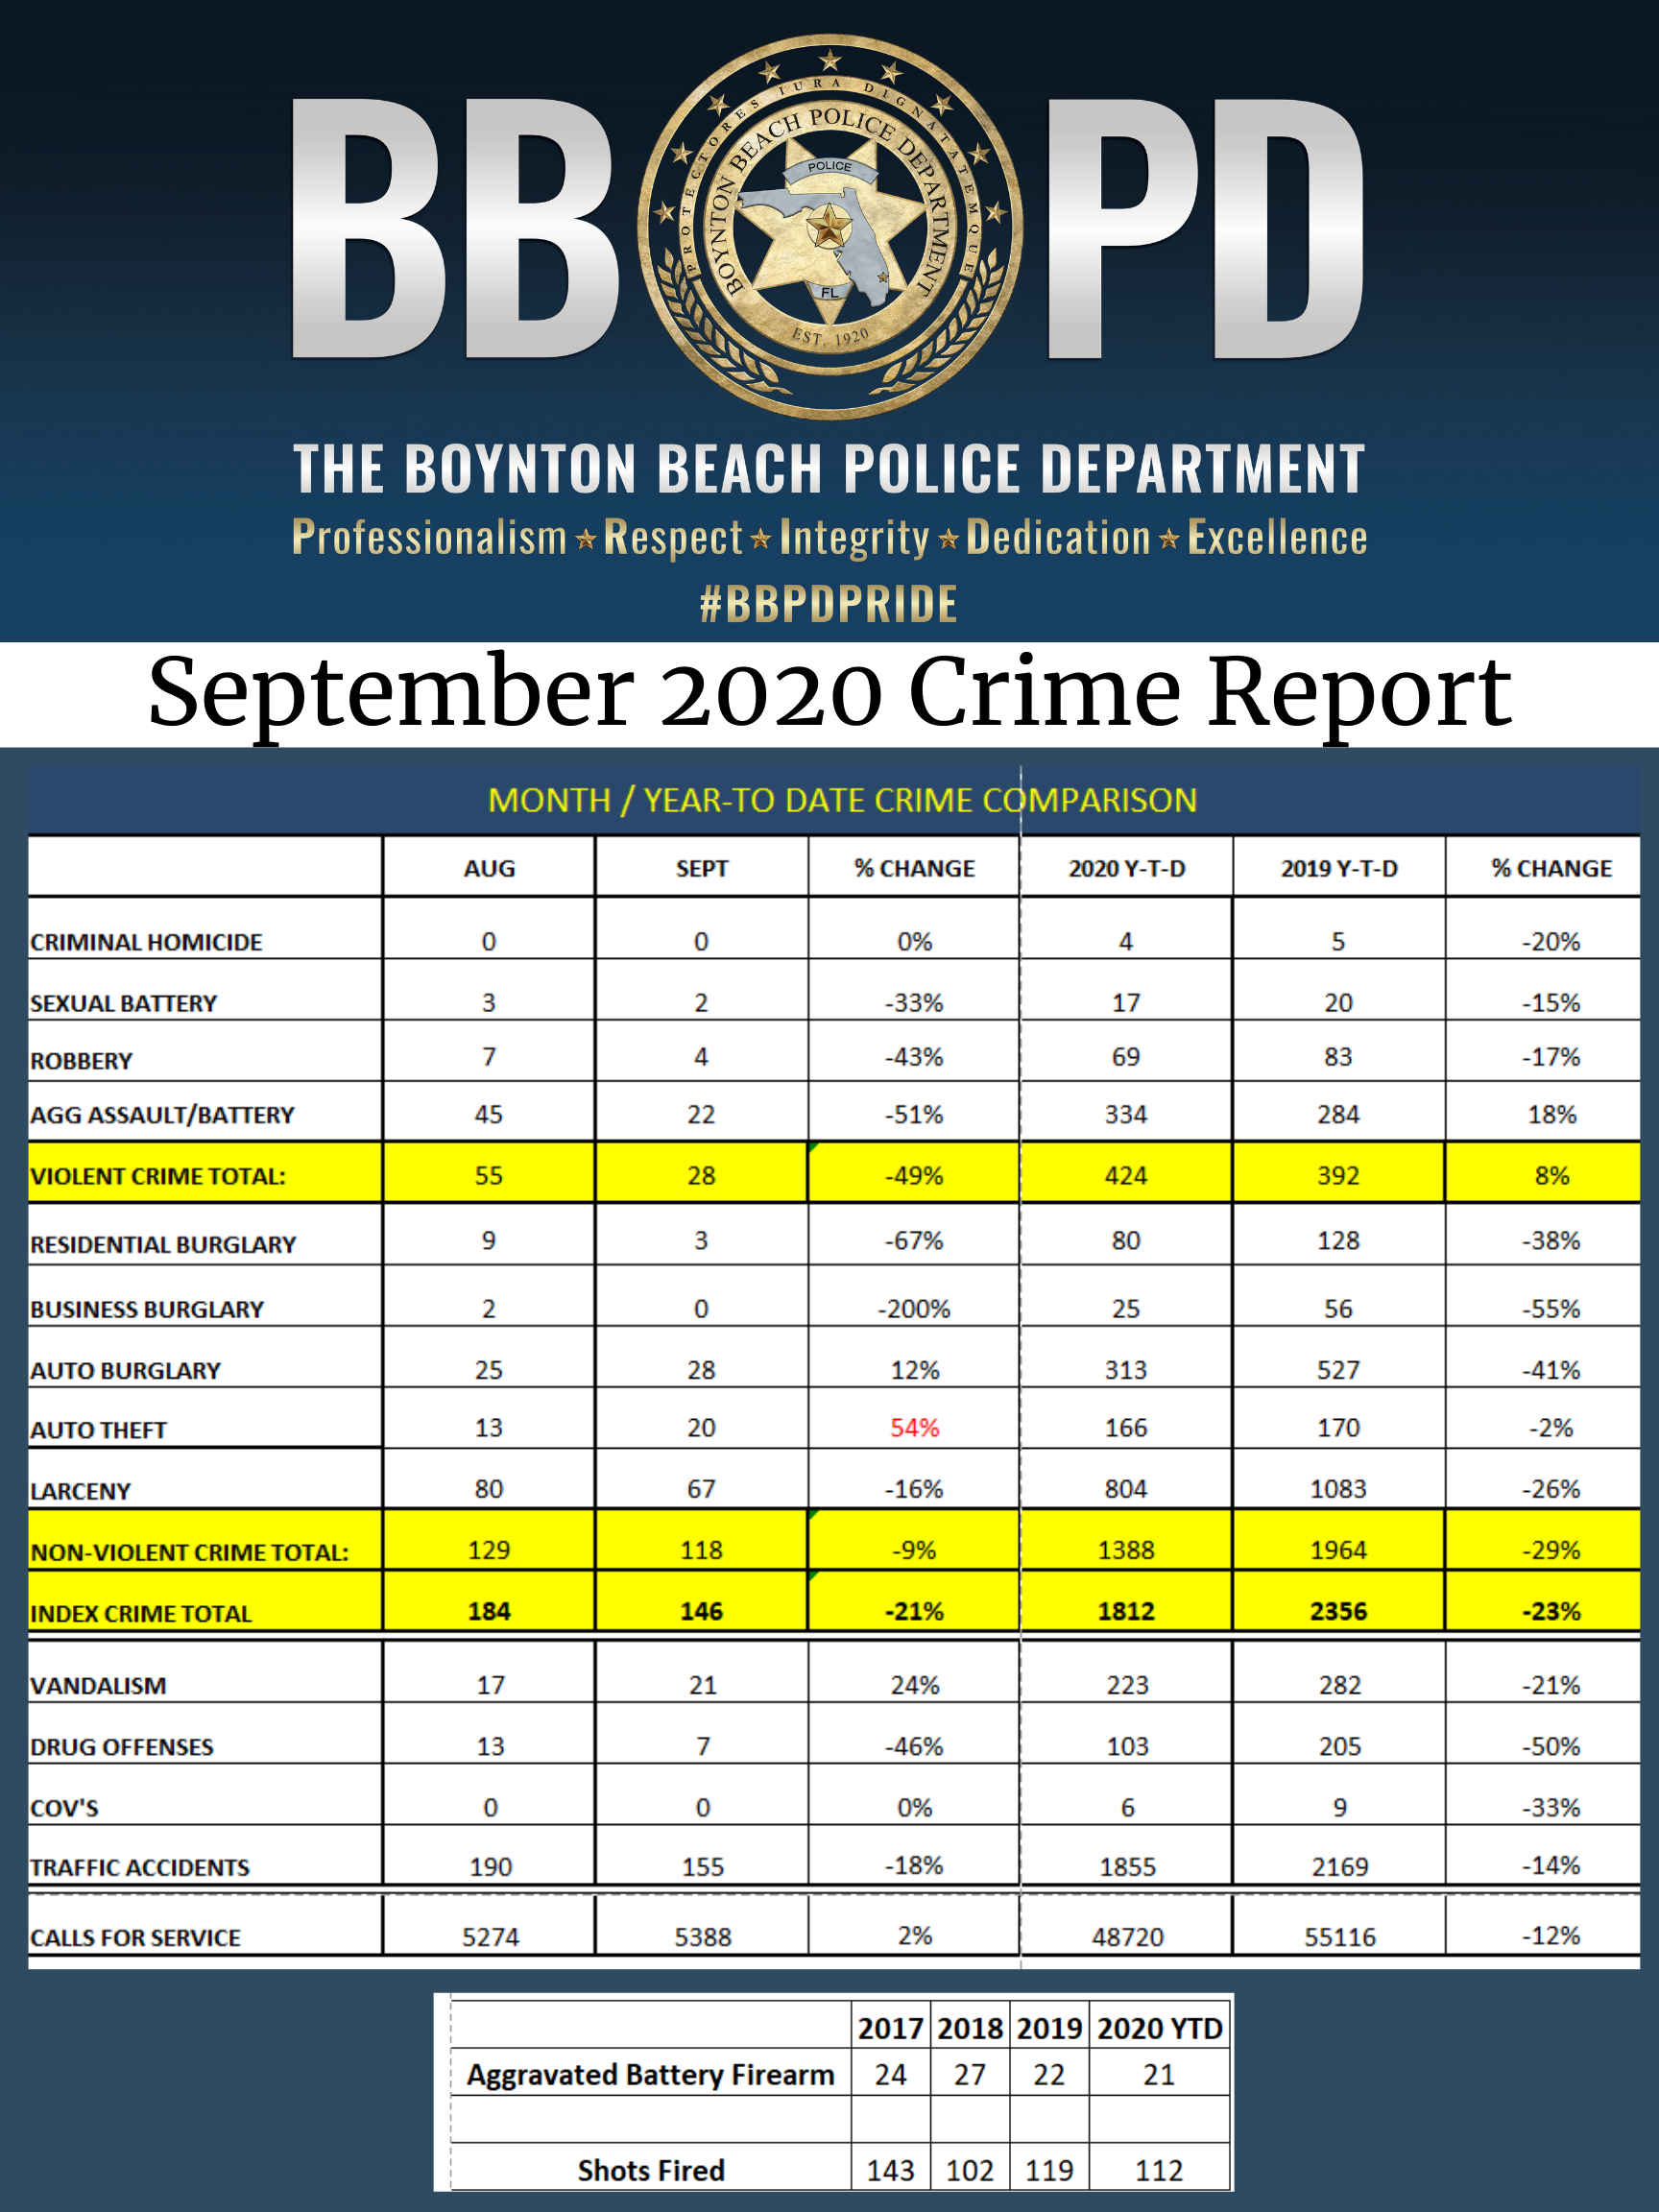 Excel spreadsheet that shows crime data for august and september 2020 as well as year to date crime comparison